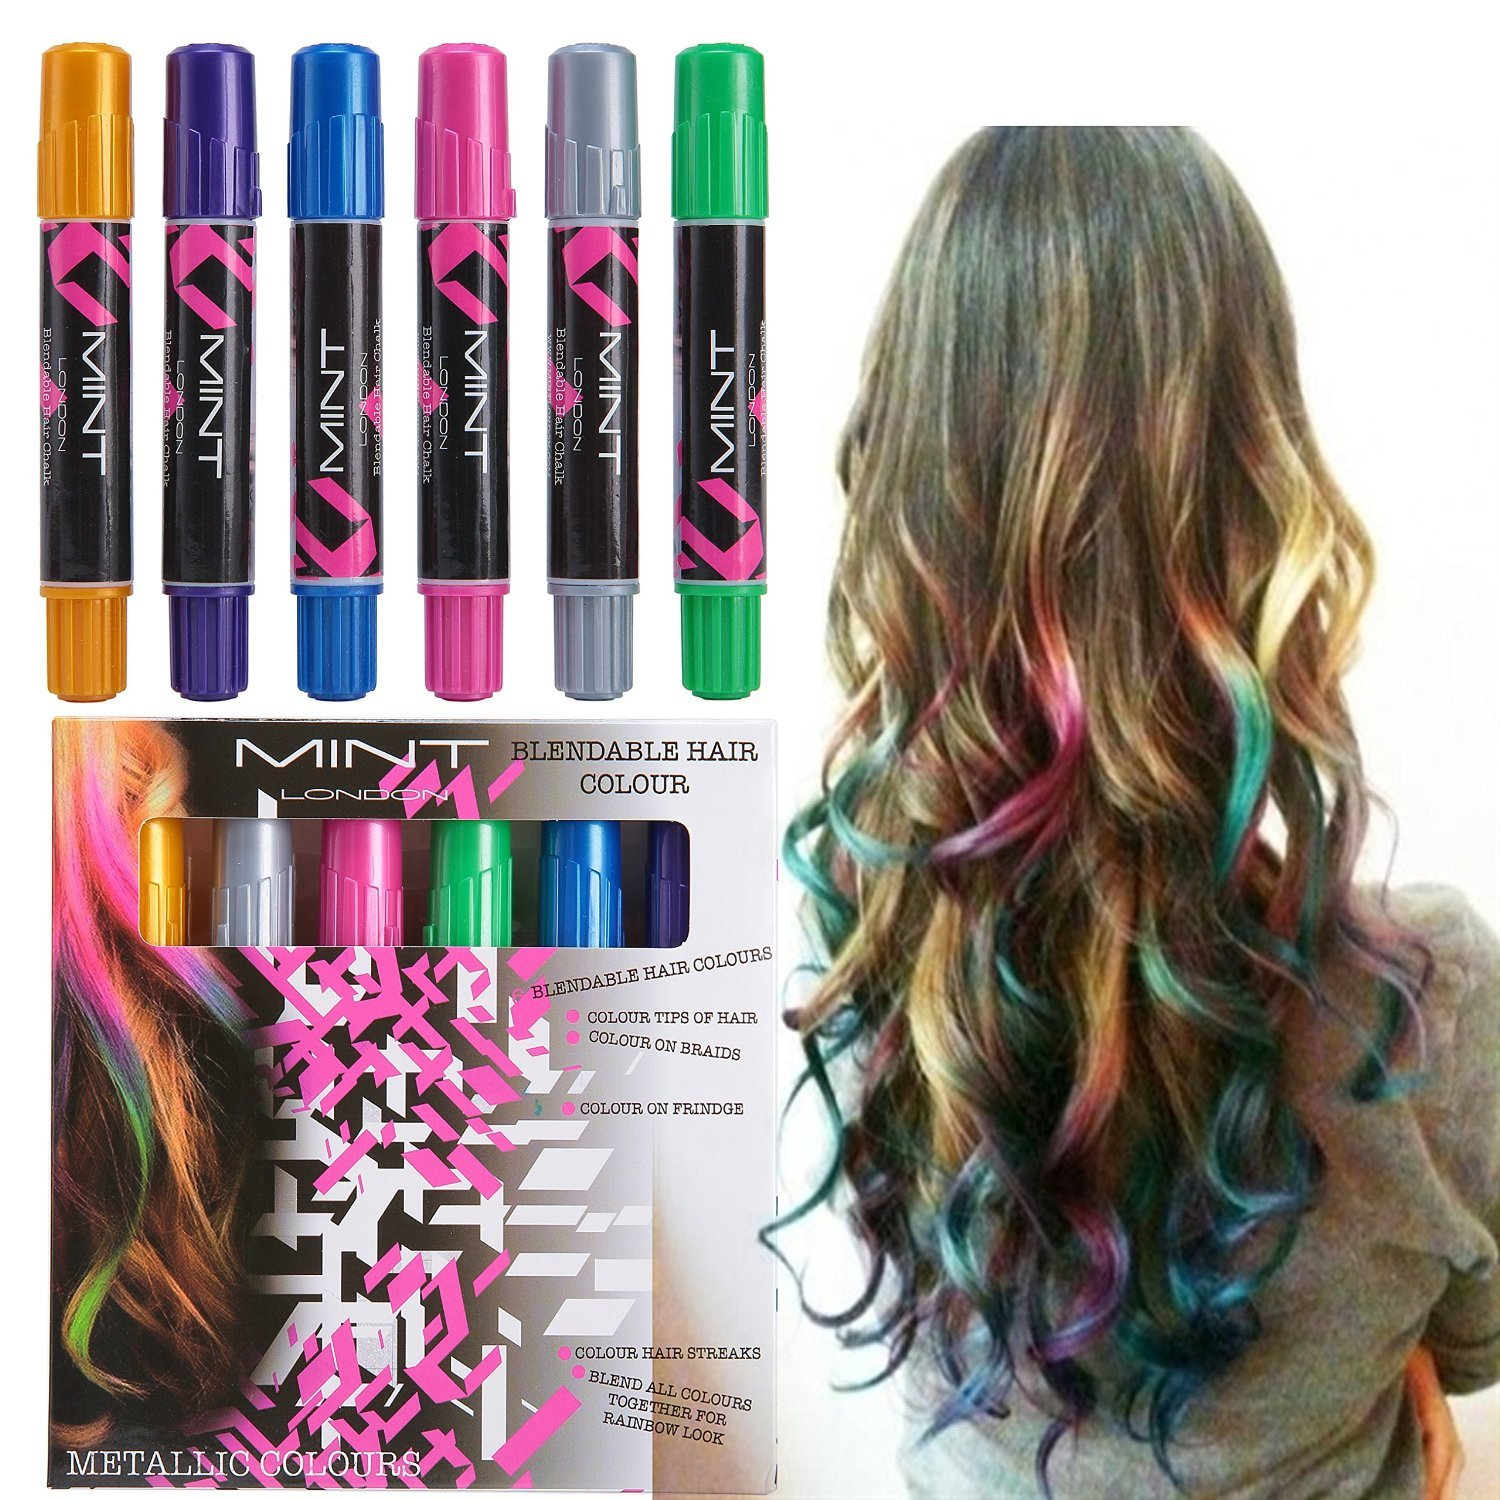 Hair Chalk - Metallic Glitter Temporary Hair Color - Edge Chalkers - No Mess - Built in Sealant - Works on All Hair Colors - Color Essentials Set (6 Count) Romani Tech